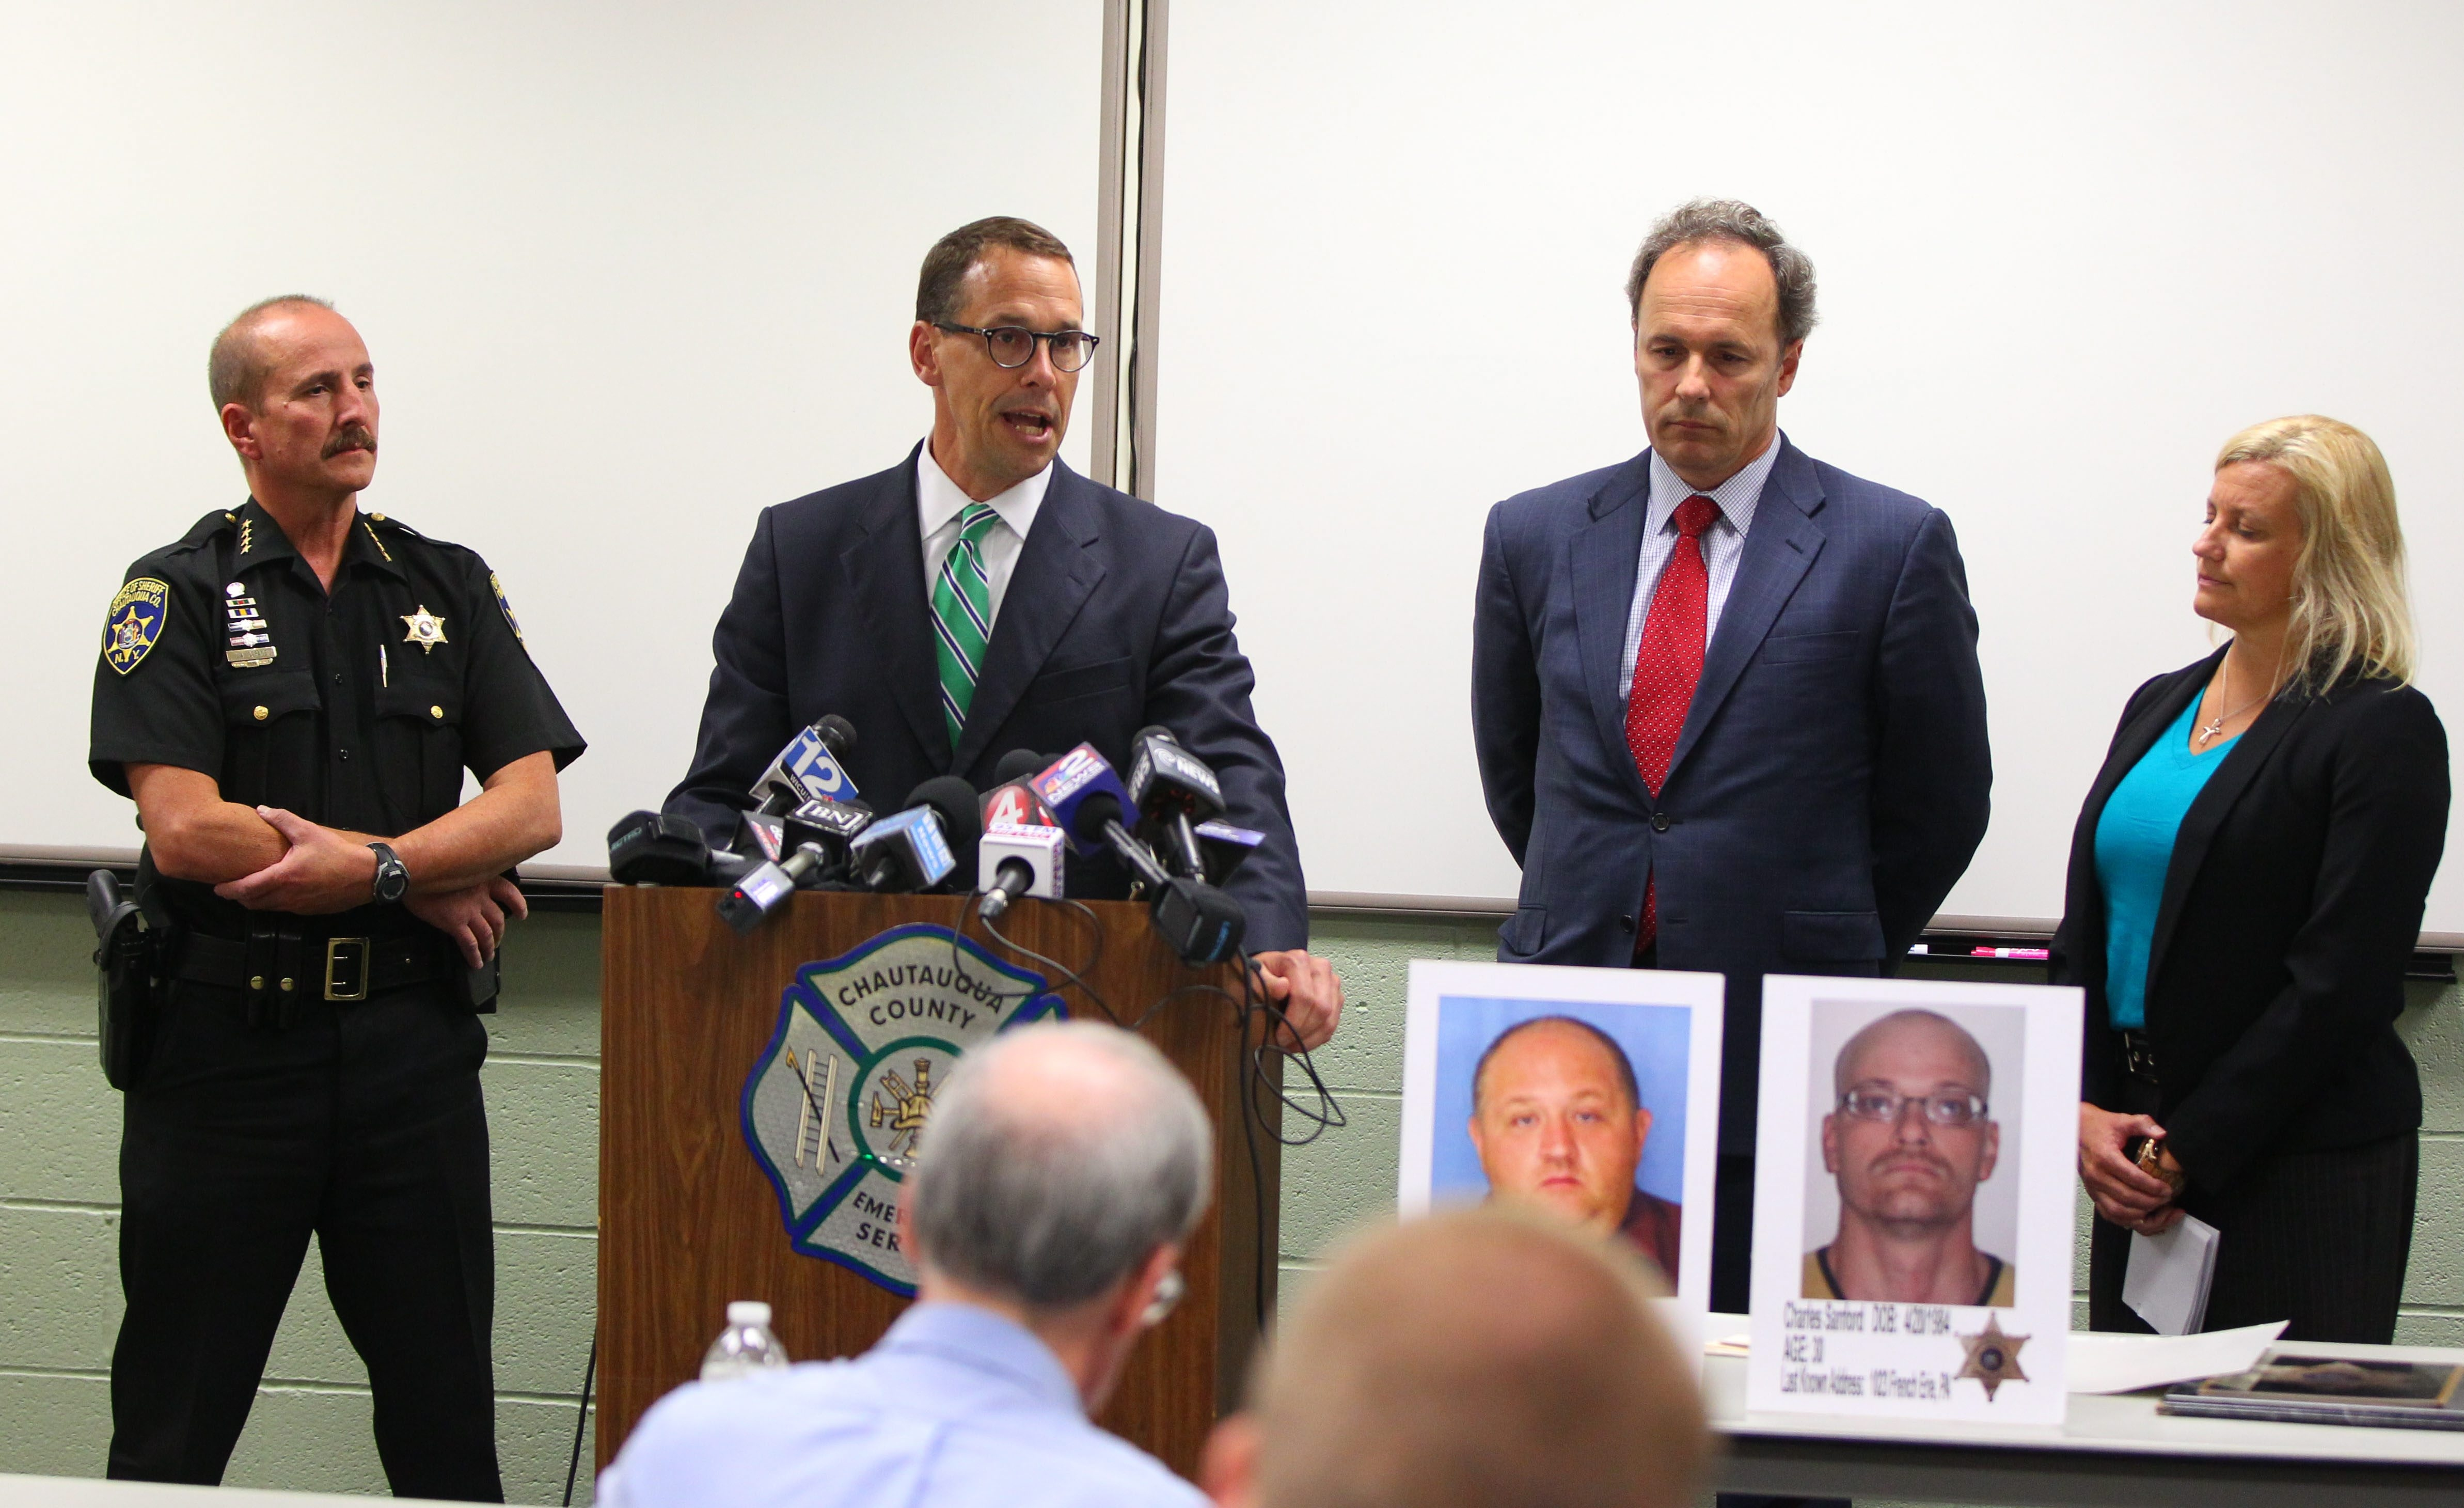 Chautauqua County Sheriff Joe Gerace, left, speaks at Friday's news conference as Chautauqua County District Attorney David Foley, second right; U.S. Attorney William Hochul Jr., second left; and Holley Hubert of the Buffalo office of the FBI, right, listen.